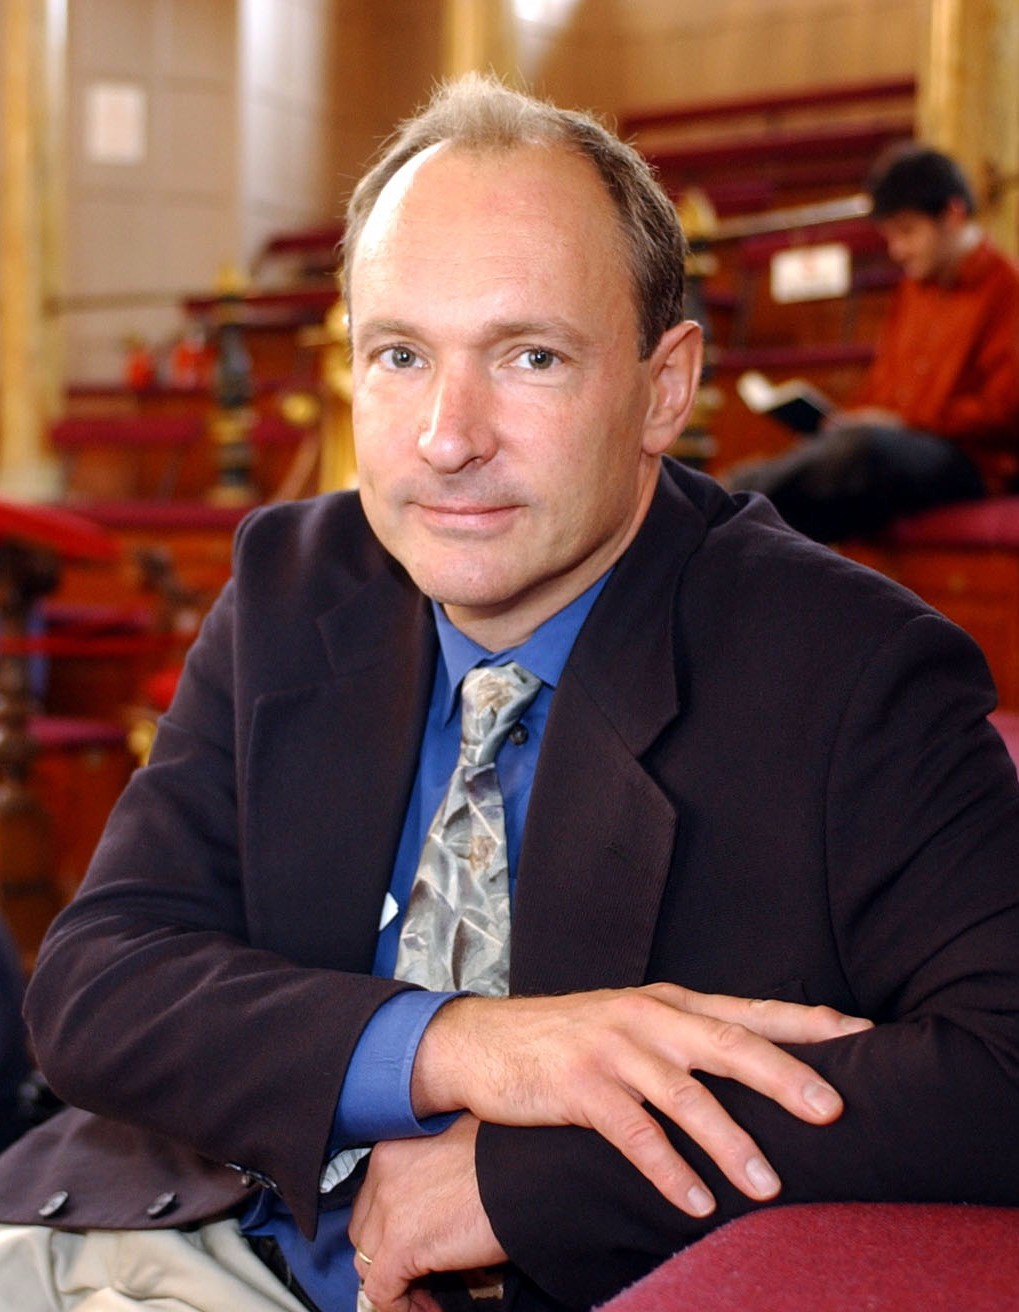 Photograph of Sir Professor Tim Berners-Lee